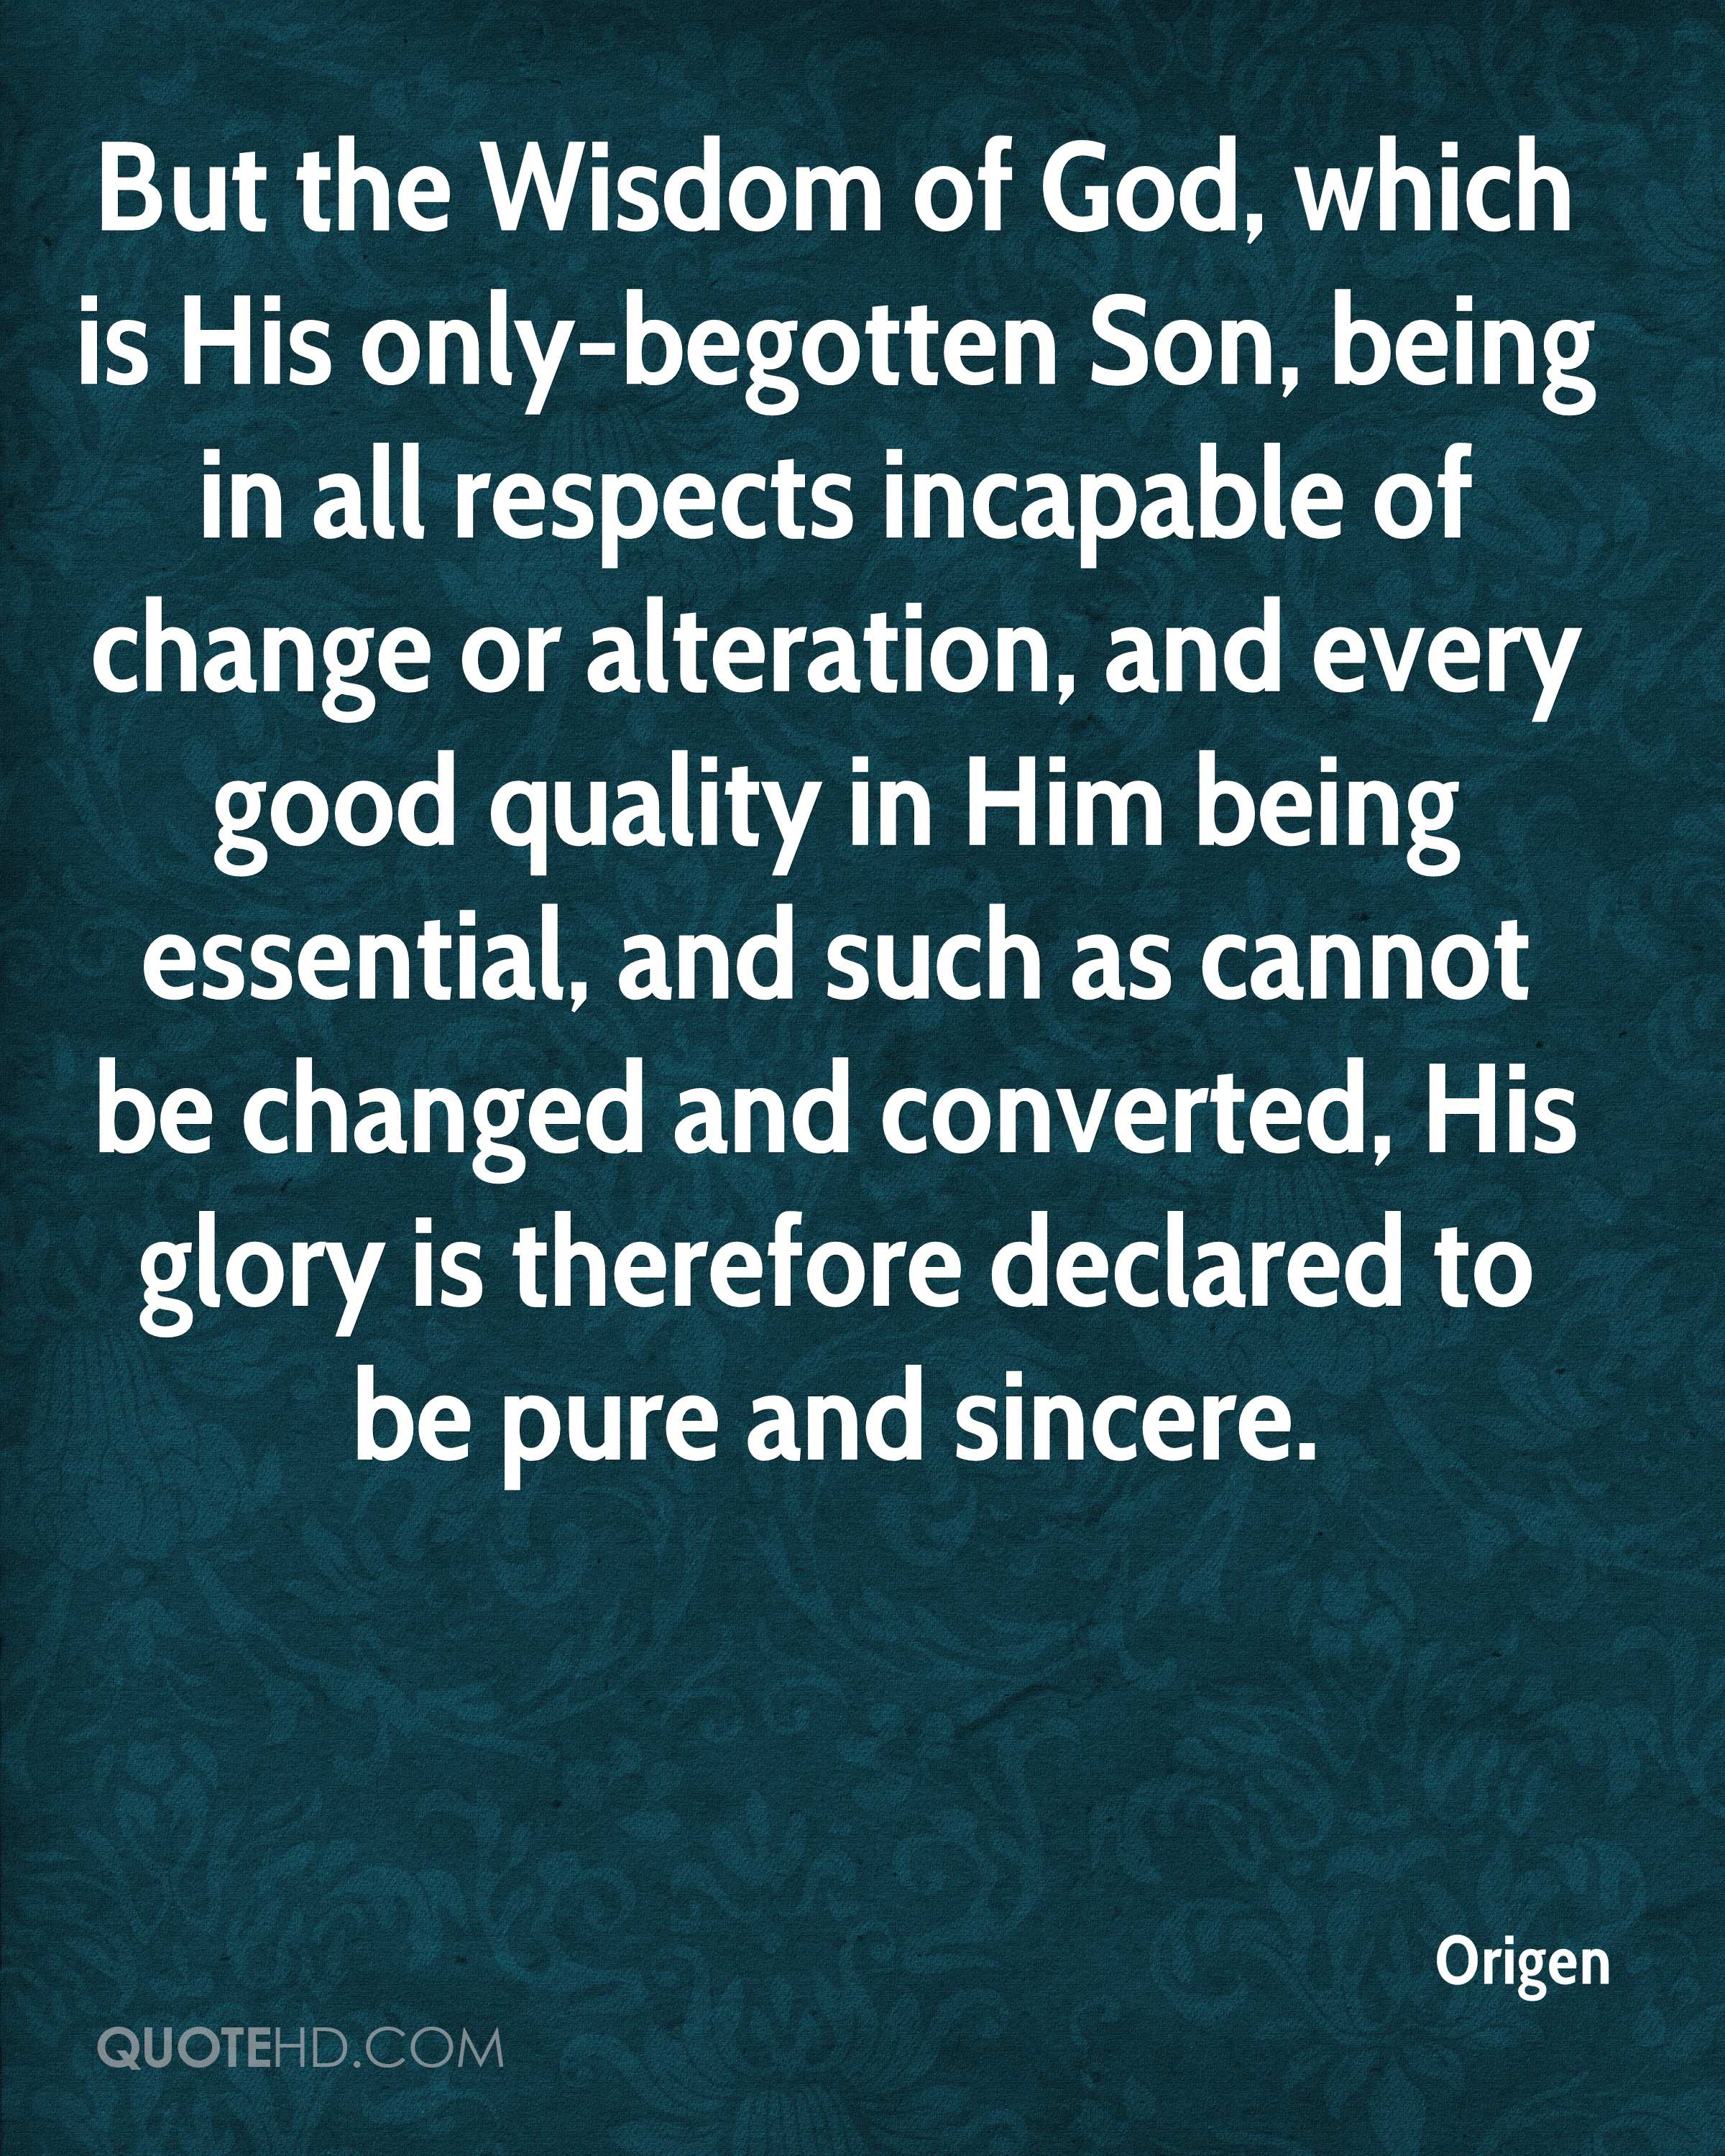 But the Wisdom of God, which is His only-begotten Son, being in all respects incapable of change or alteration, and every good quality in Him being essential, and such as cannot be changed and converted, His glory is therefore declared to be pure and sincere.